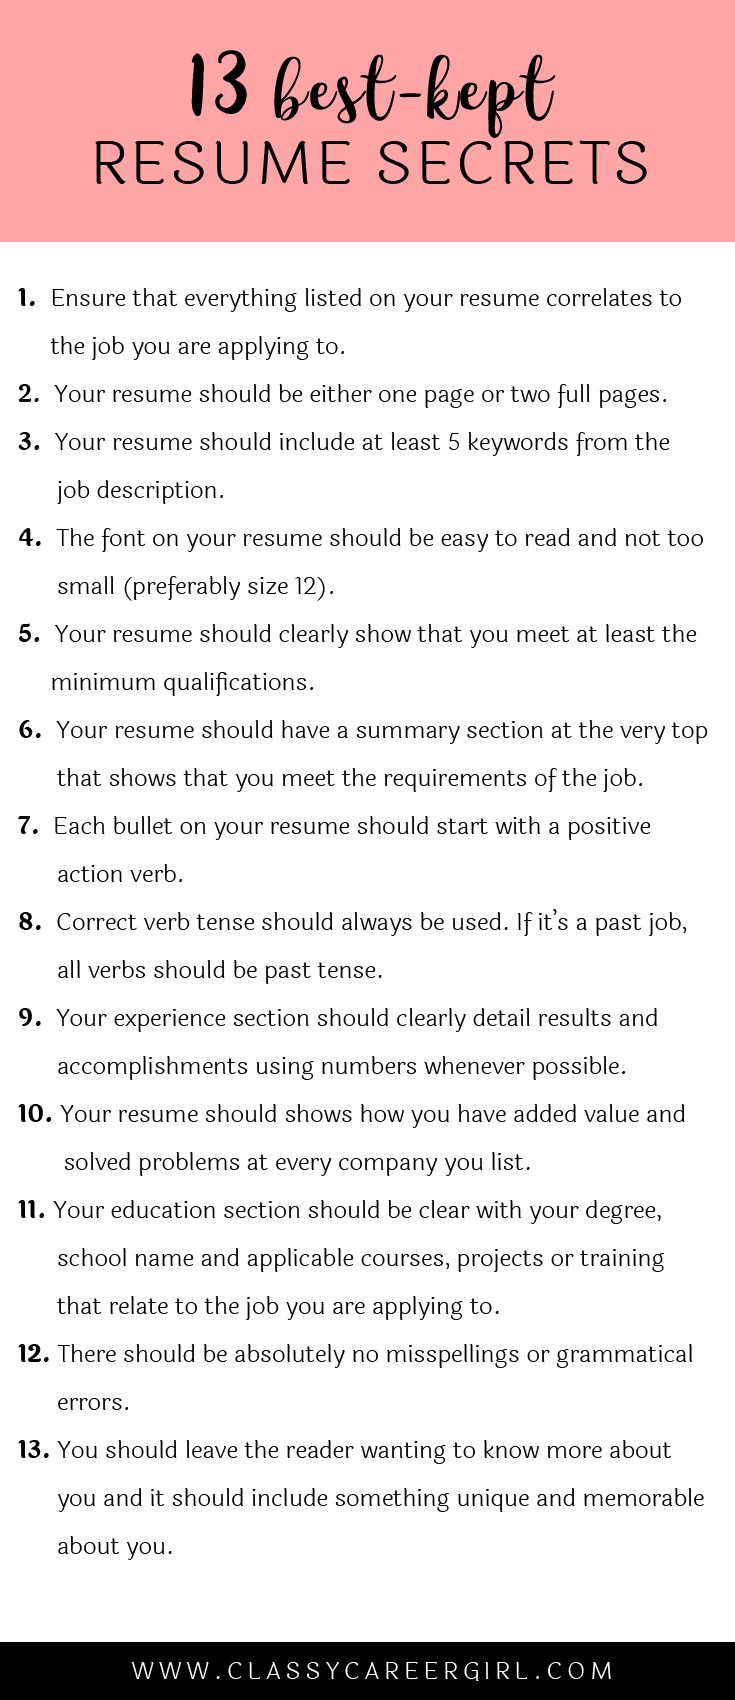 Opposenewapstandardsus  Mesmerizing  Ideas About Resume On Pinterest  Cv Format Resume Cv And  With Entrancing Some Hiring Managers Will Toss Your Resume Out If You Dont Know These  With Beauteous Resume Opening Statement Also Education Resume Examples In Addition Summary Of Qualifications Resume And Landscaping Resume As Well As Example Resume Cover Letter Additionally Educational Resume From Pinterestcom With Opposenewapstandardsus  Entrancing  Ideas About Resume On Pinterest  Cv Format Resume Cv And  With Beauteous Some Hiring Managers Will Toss Your Resume Out If You Dont Know These  And Mesmerizing Resume Opening Statement Also Education Resume Examples In Addition Summary Of Qualifications Resume From Pinterestcom